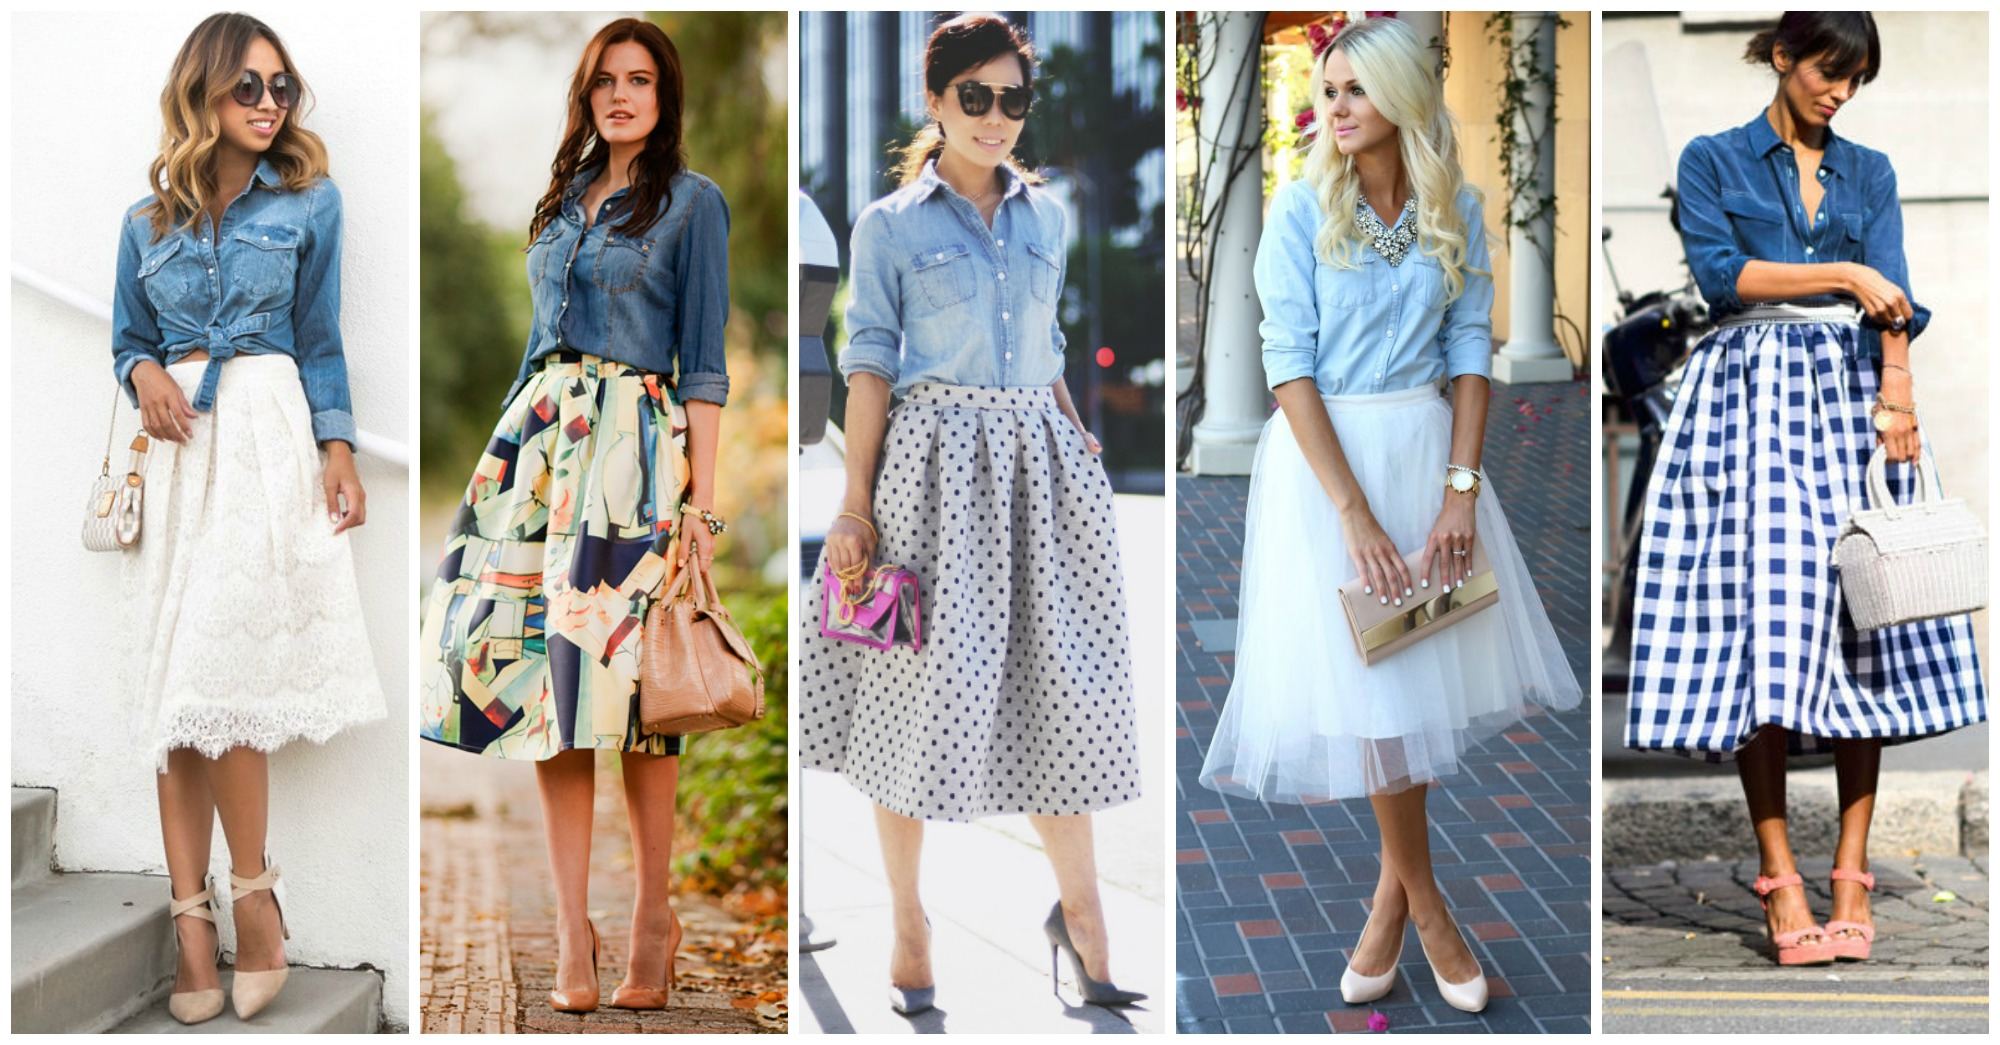 11 Stylish and Chic Outfit Ideas with Denim Shirts and Skirts